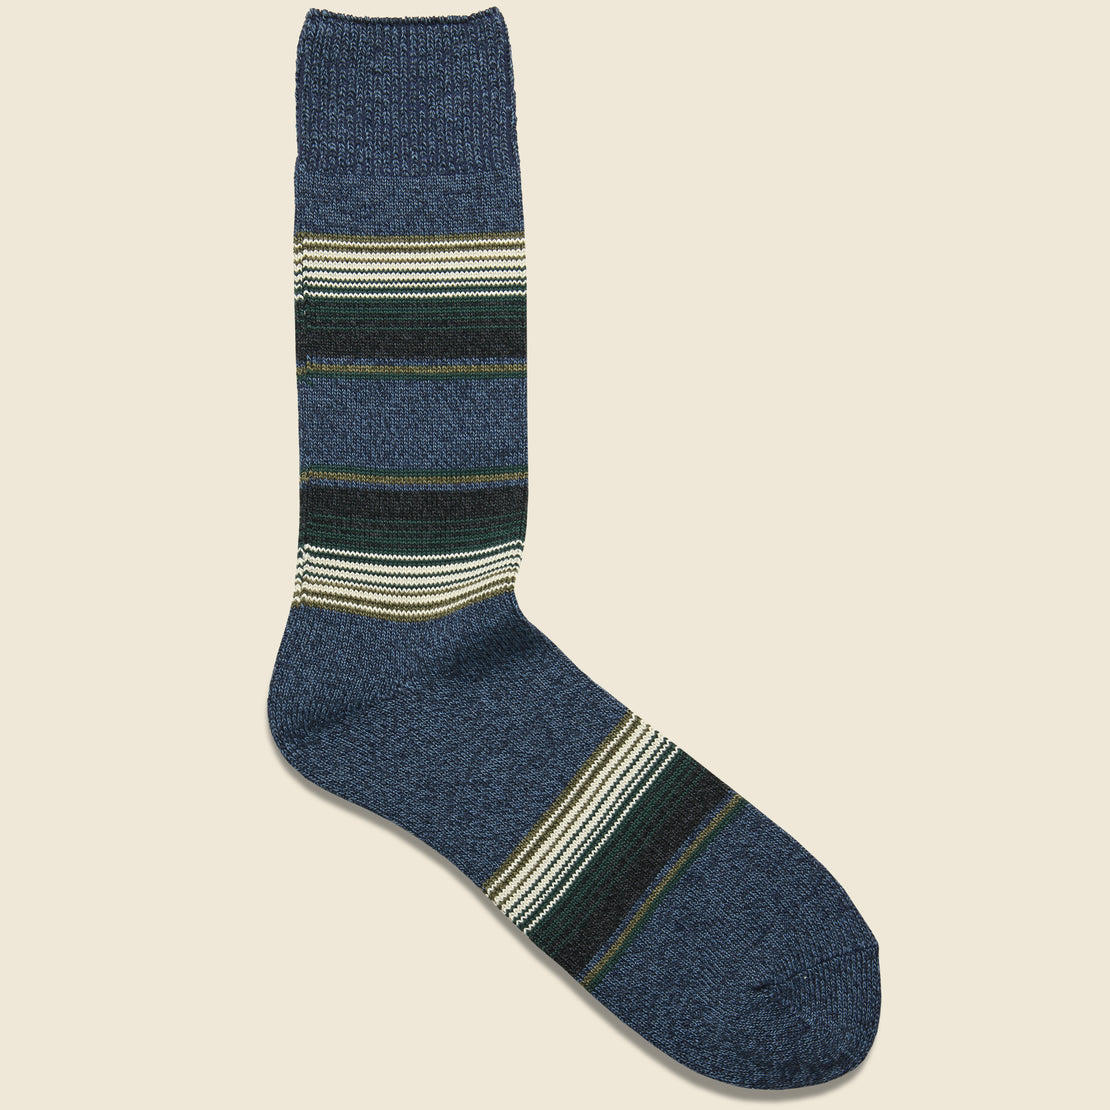 RoToTo Baja Cali Sock - Mix Navy